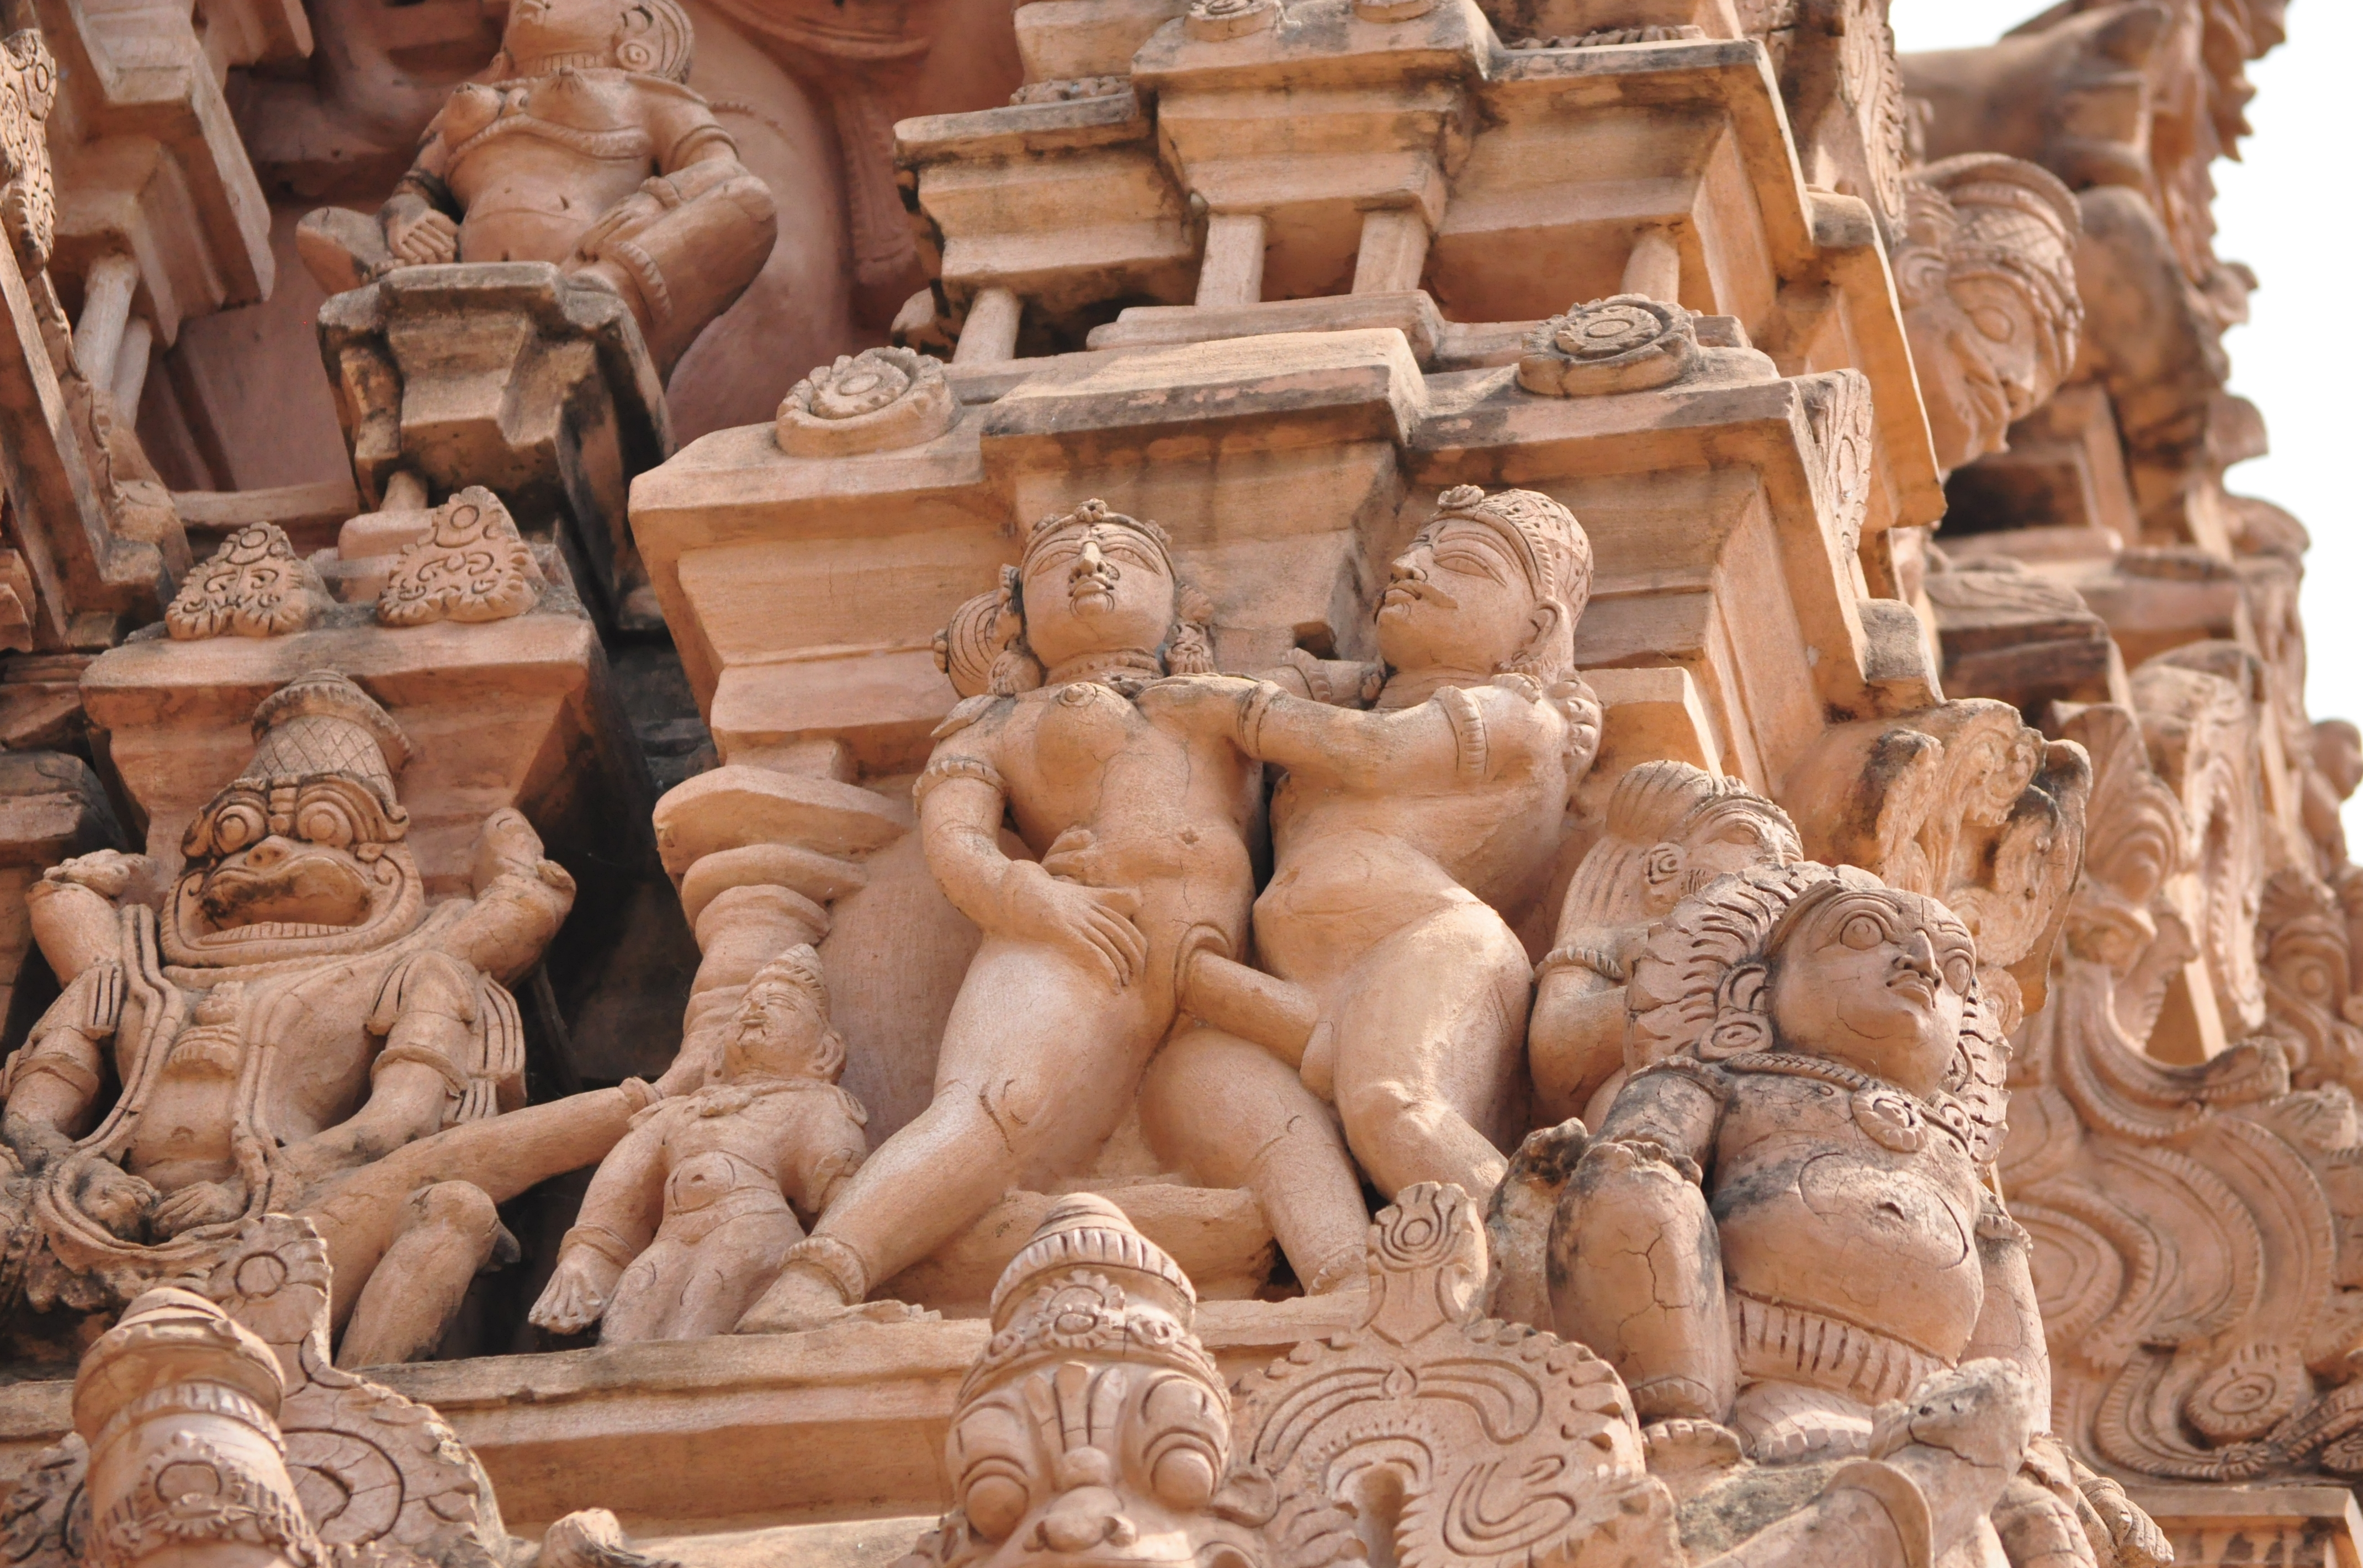 Temple sex pictures